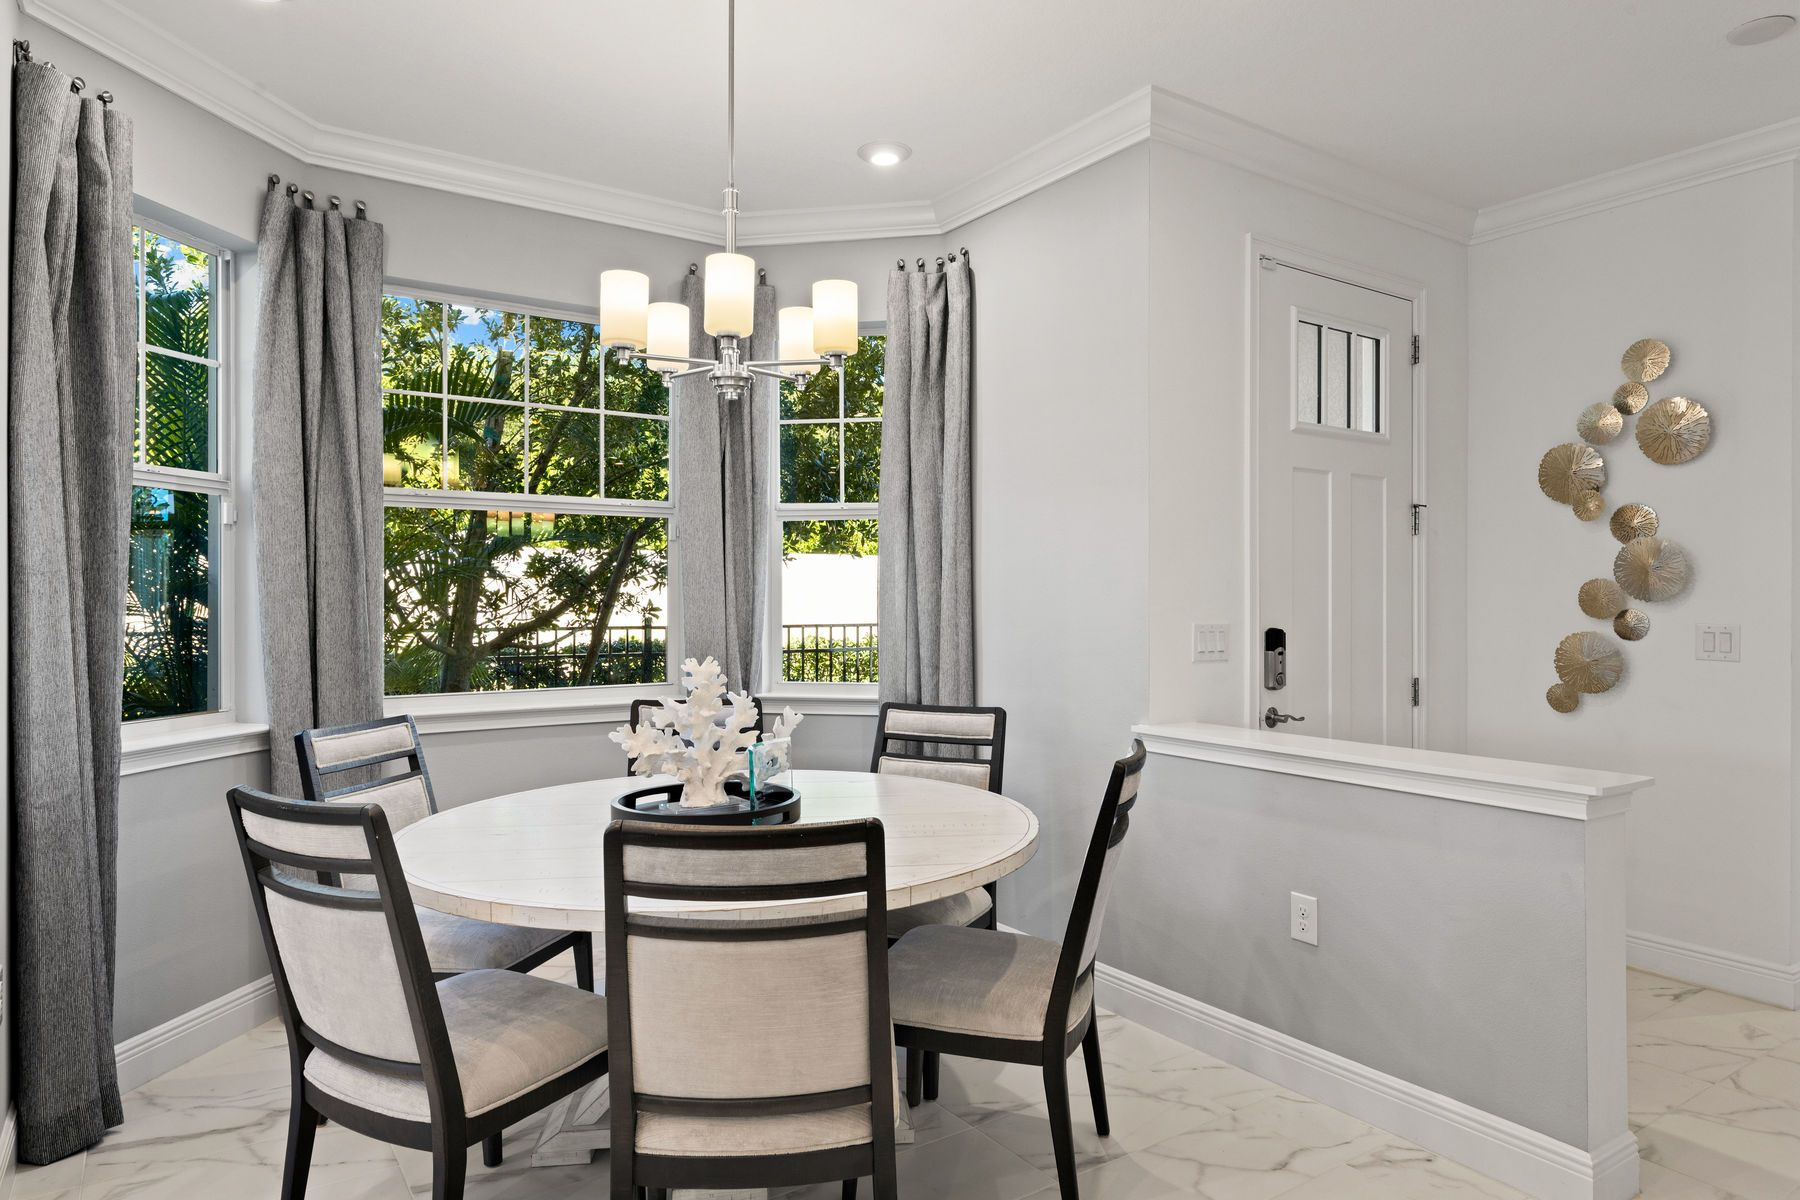 Kitchen featured in the Captiva II By Mattamy Homes in Naples, FL